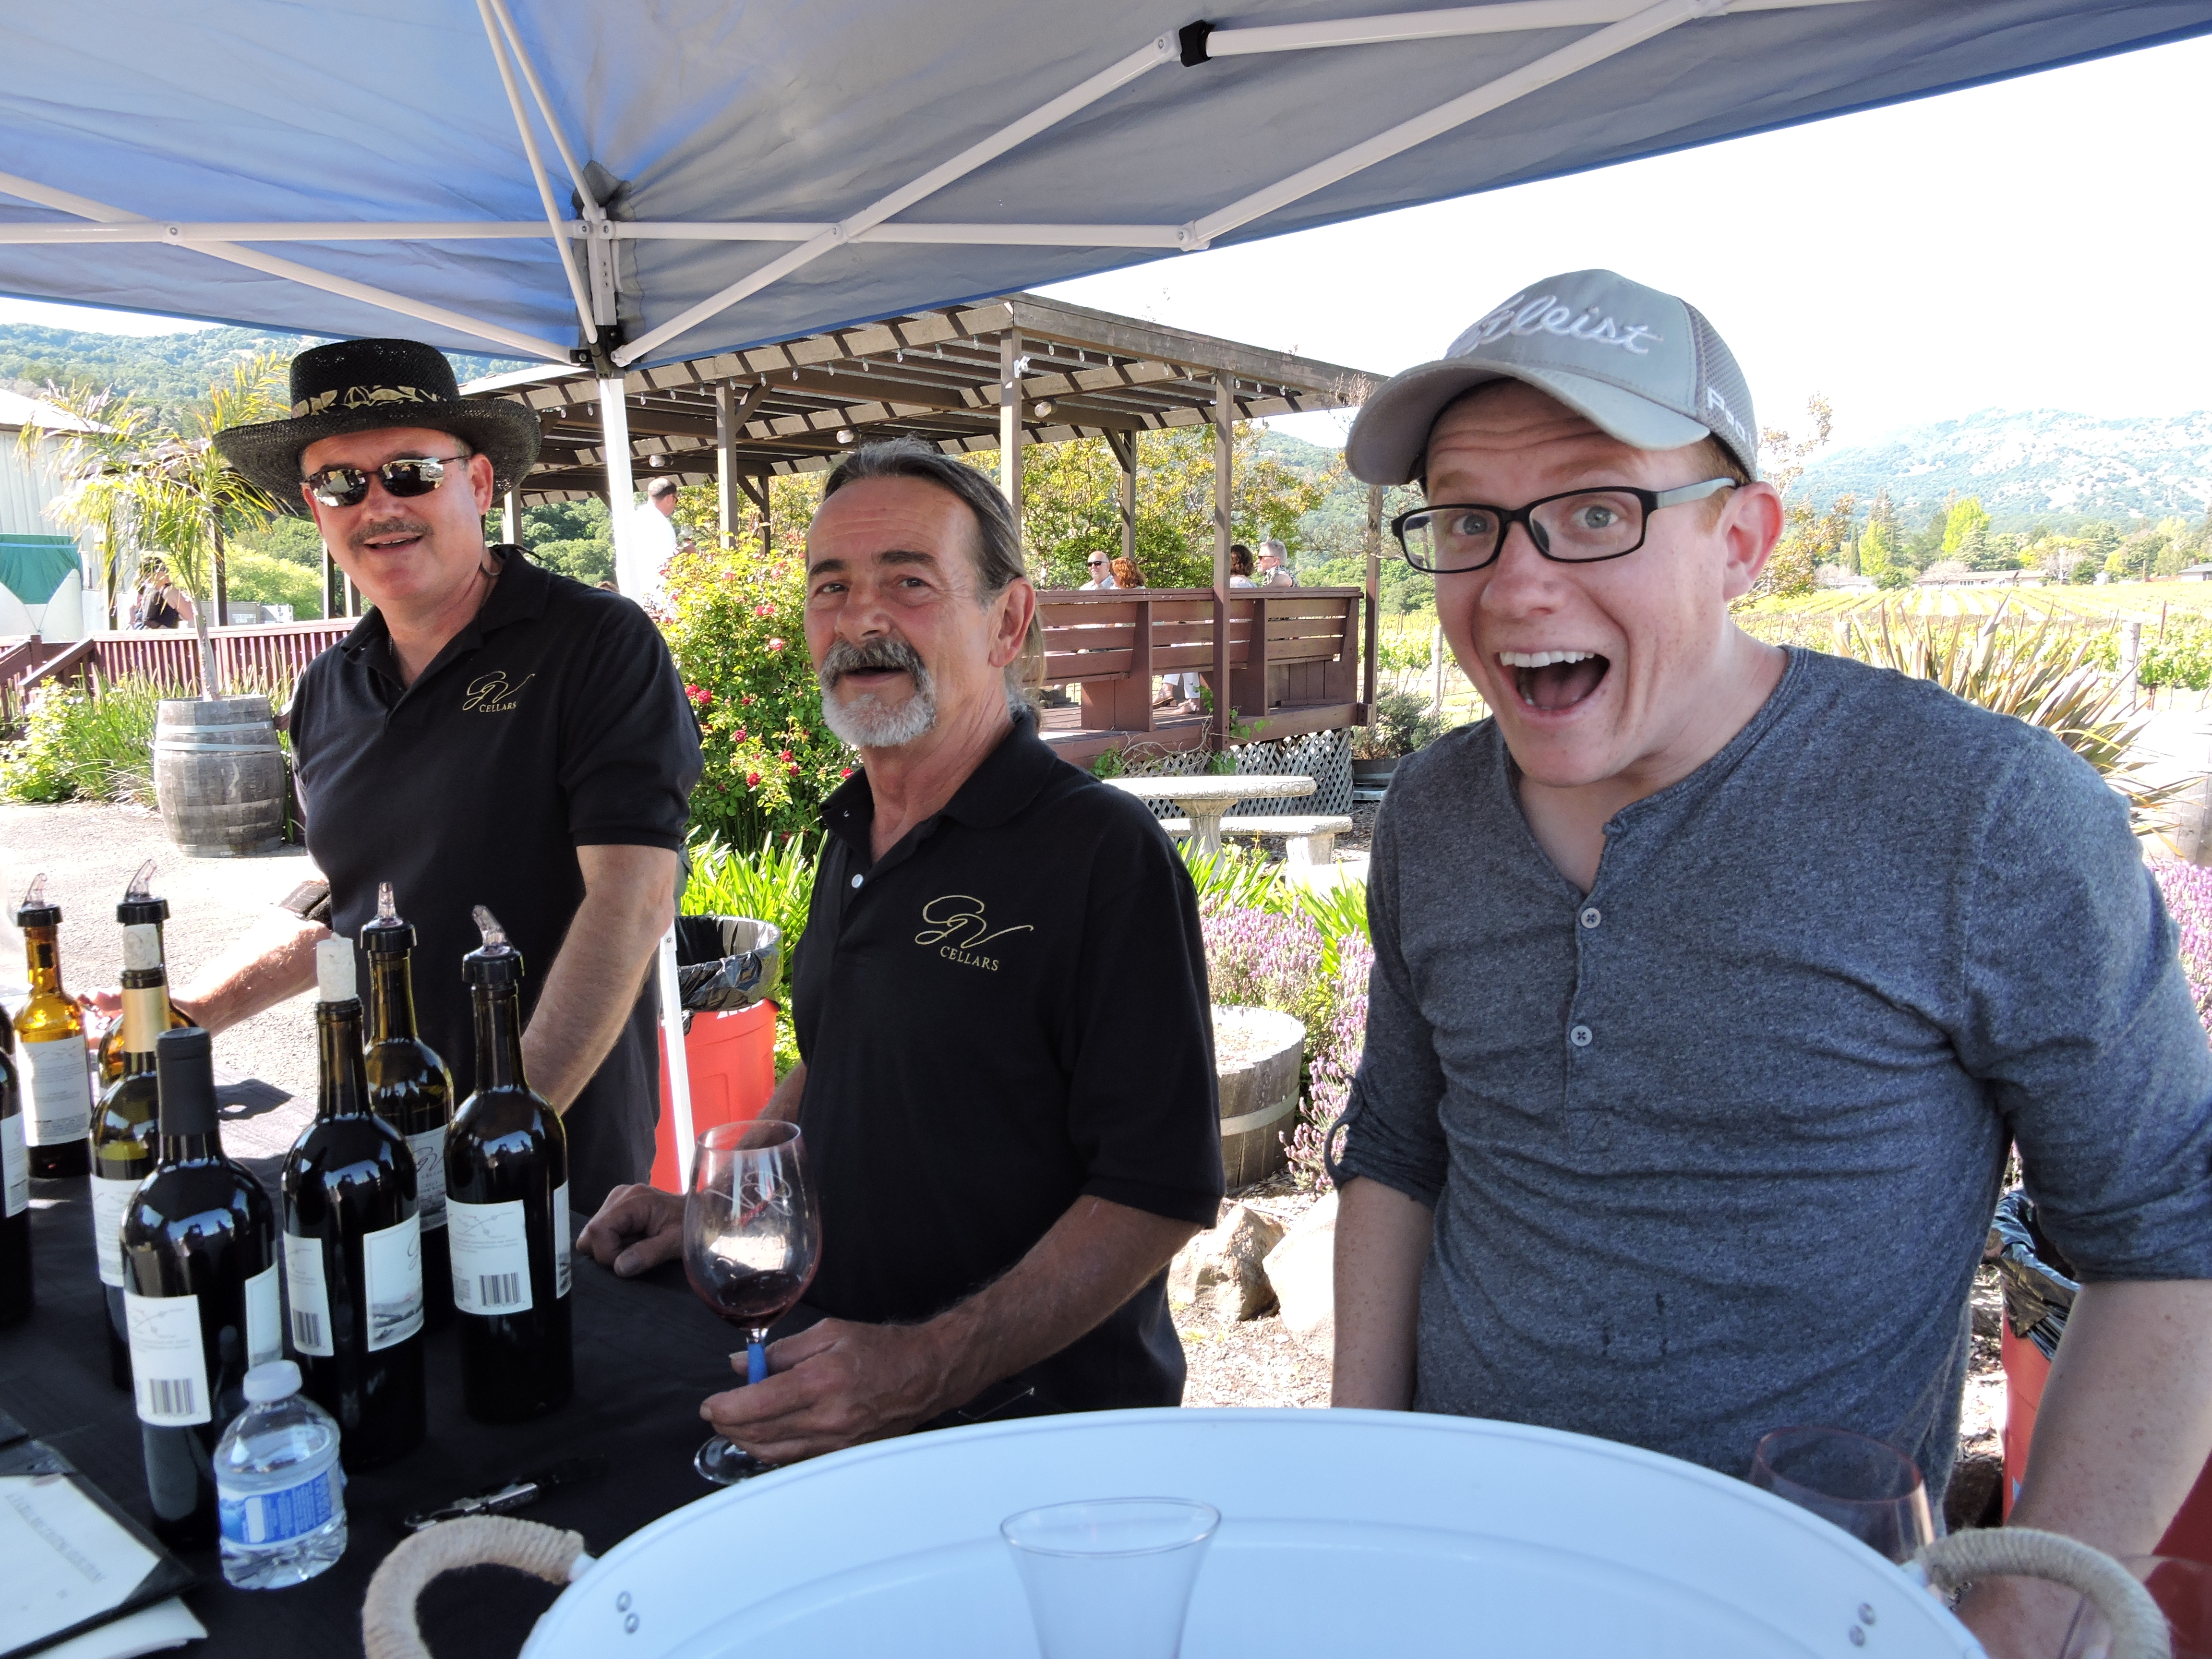 Check out the fun these guys were having pouring wine at G V Cellars in Green Valley